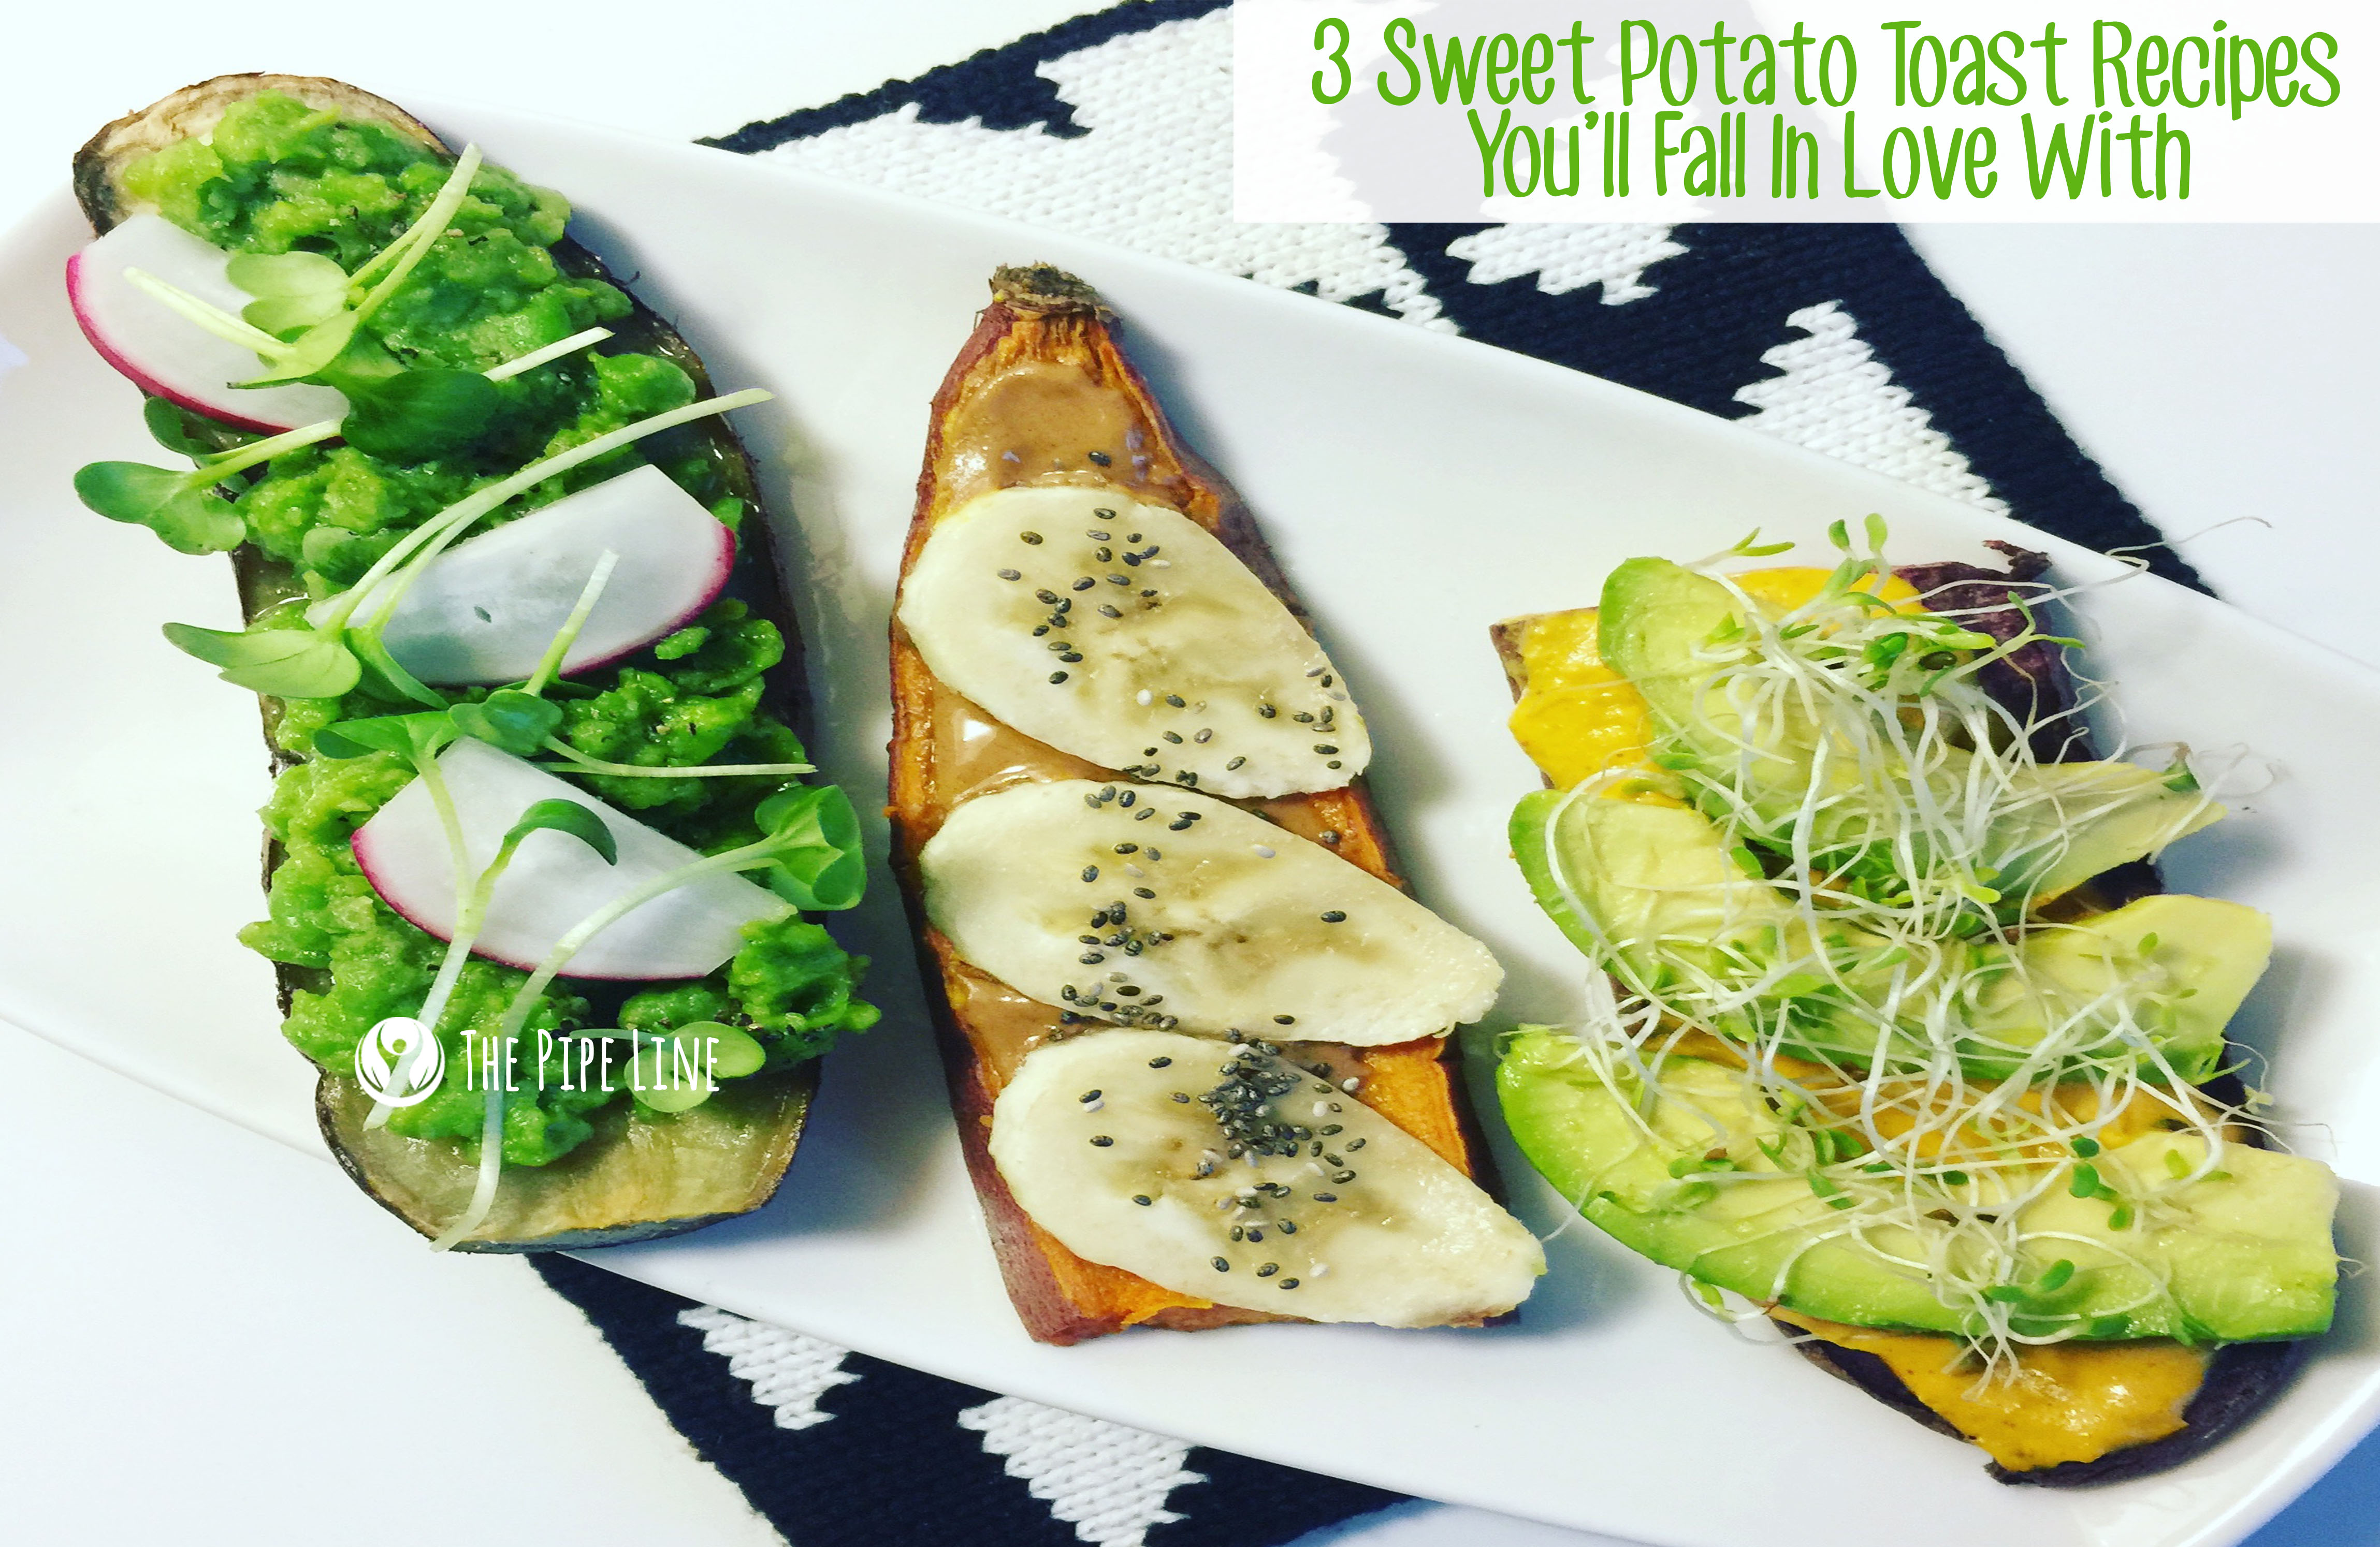 Sweet potato toast is now a thing: Here's what you need to know